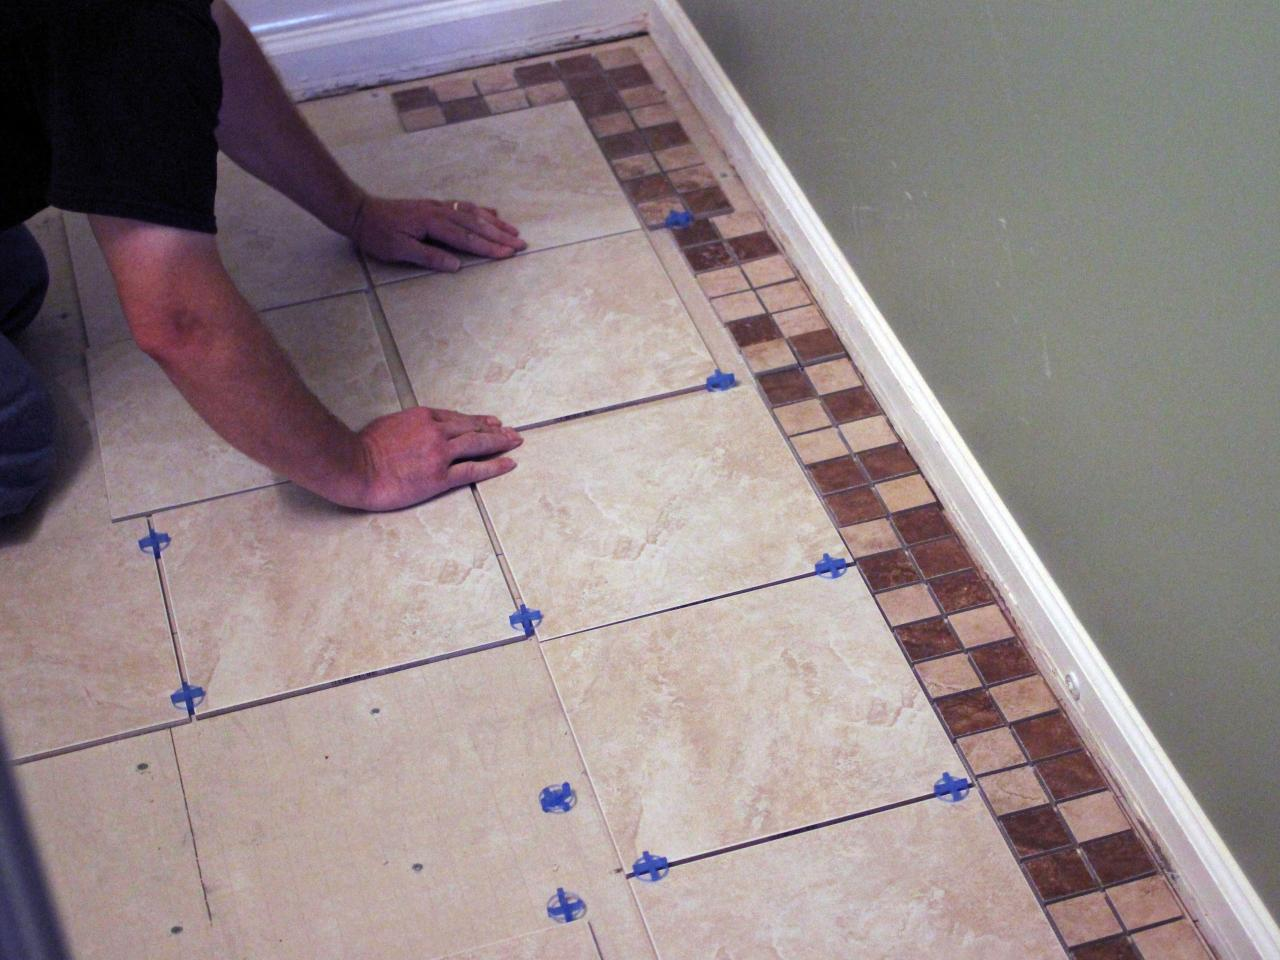 How to fit bathroom tiles - Step 4